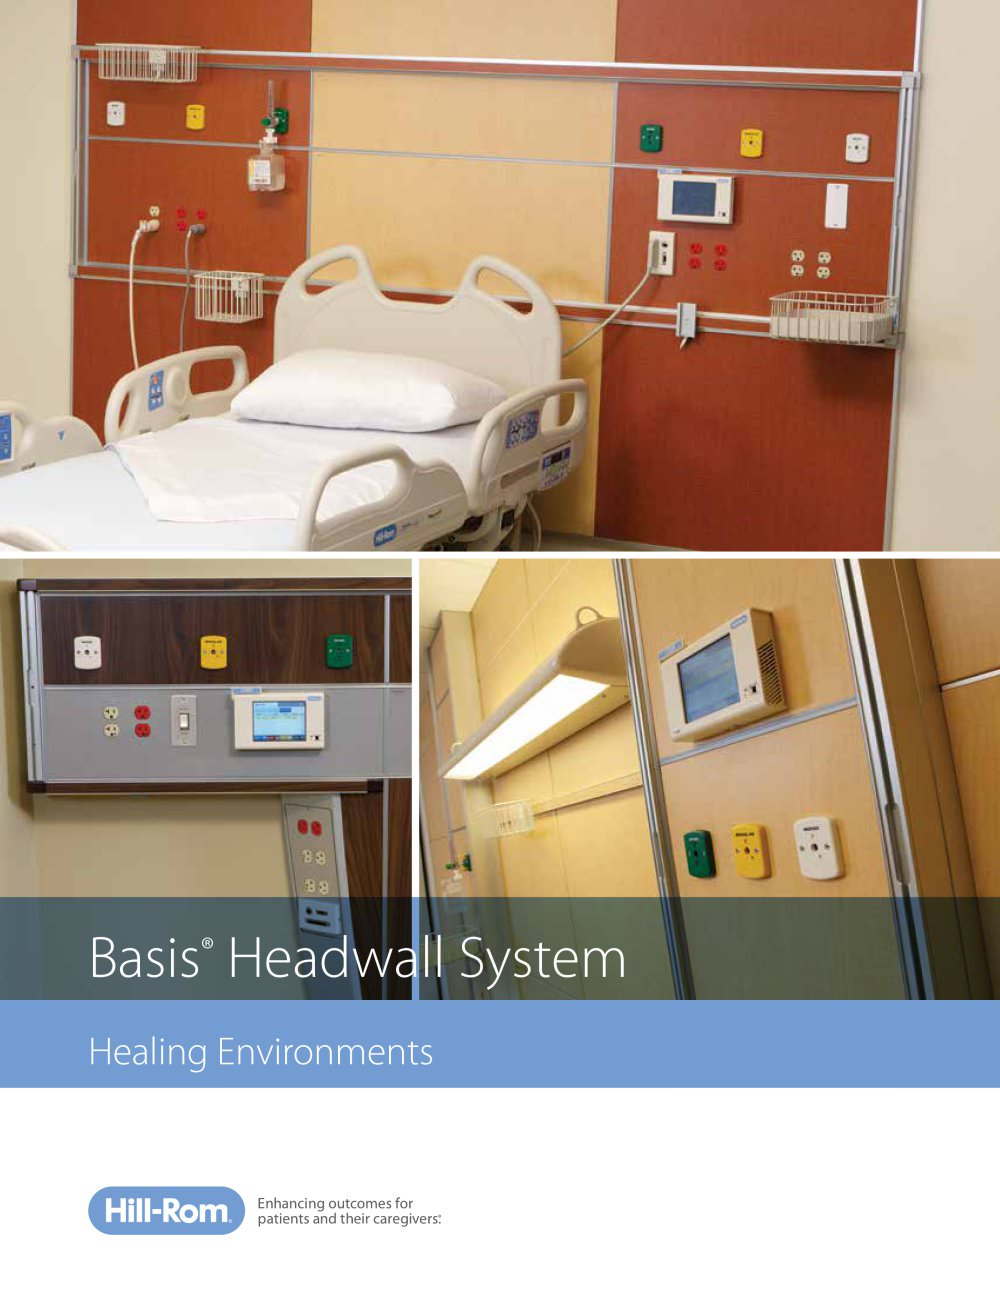 Medical Headwall Systems Basis Headwall System 1 4